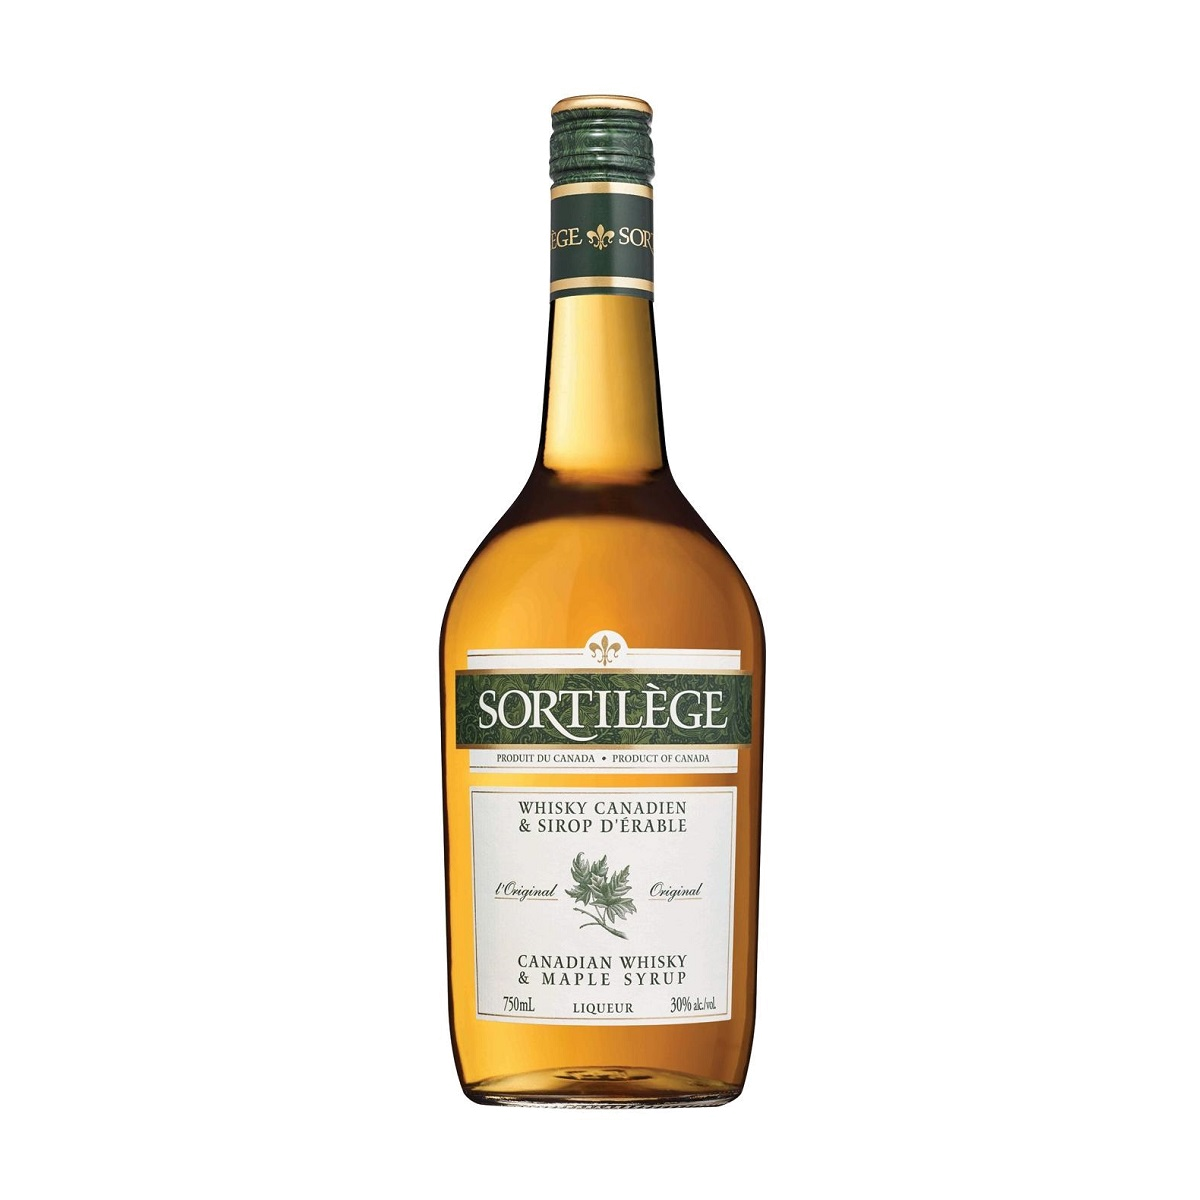 Sortilege Whisky & Maple Syrup Liqueur